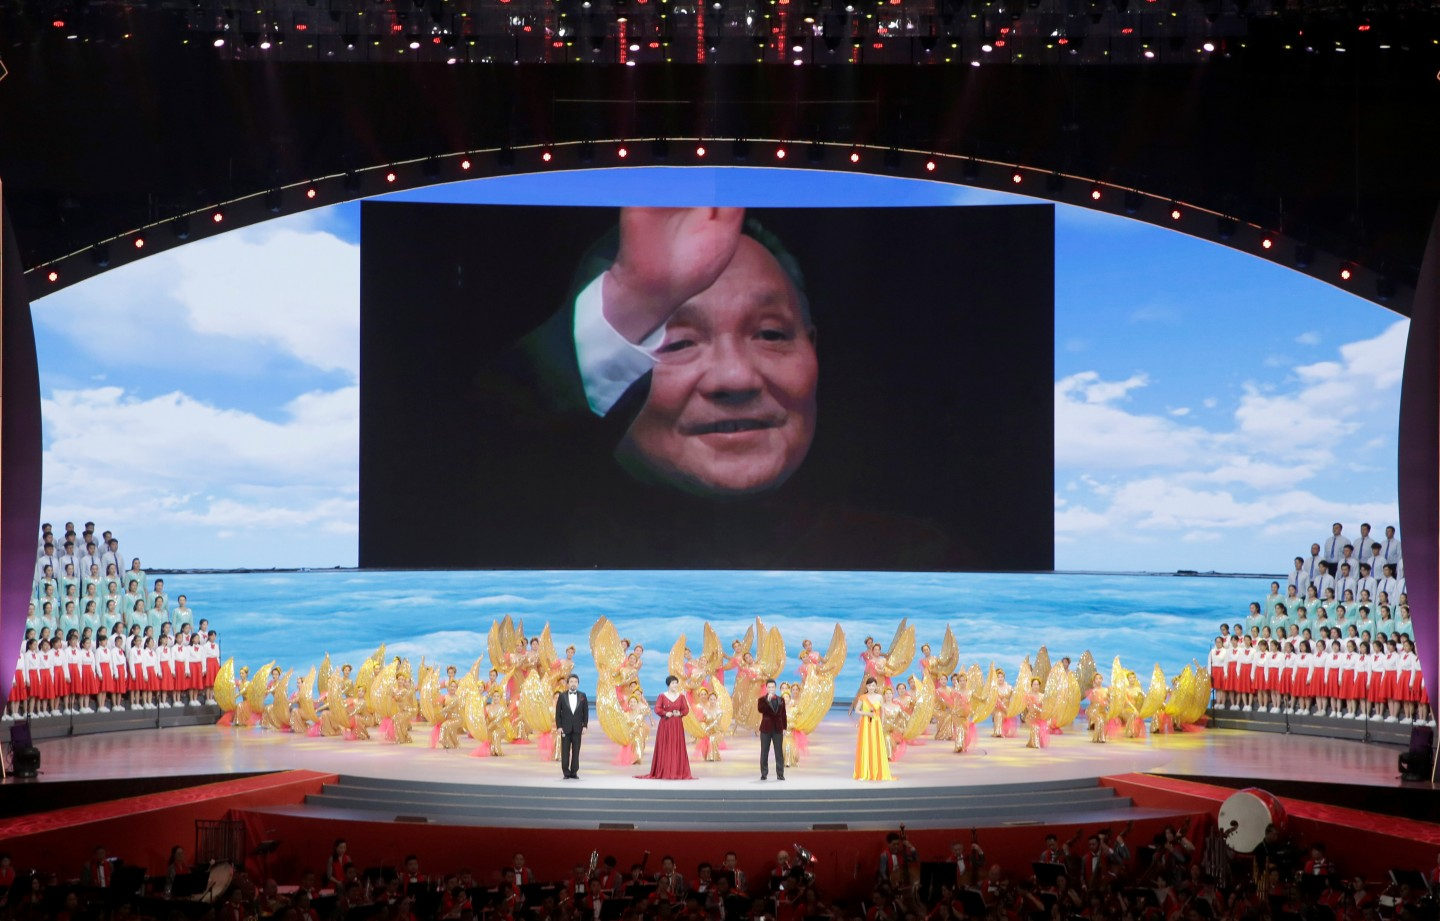 A picture of late Chinese leader Deng Xiaoping is seen on a giant screen during a cultural performance in Macau, China December 19, 2019, on the eve of the 20th anniversary of the former Portuguese colony's return to China. (Jason Lee/Reuters)